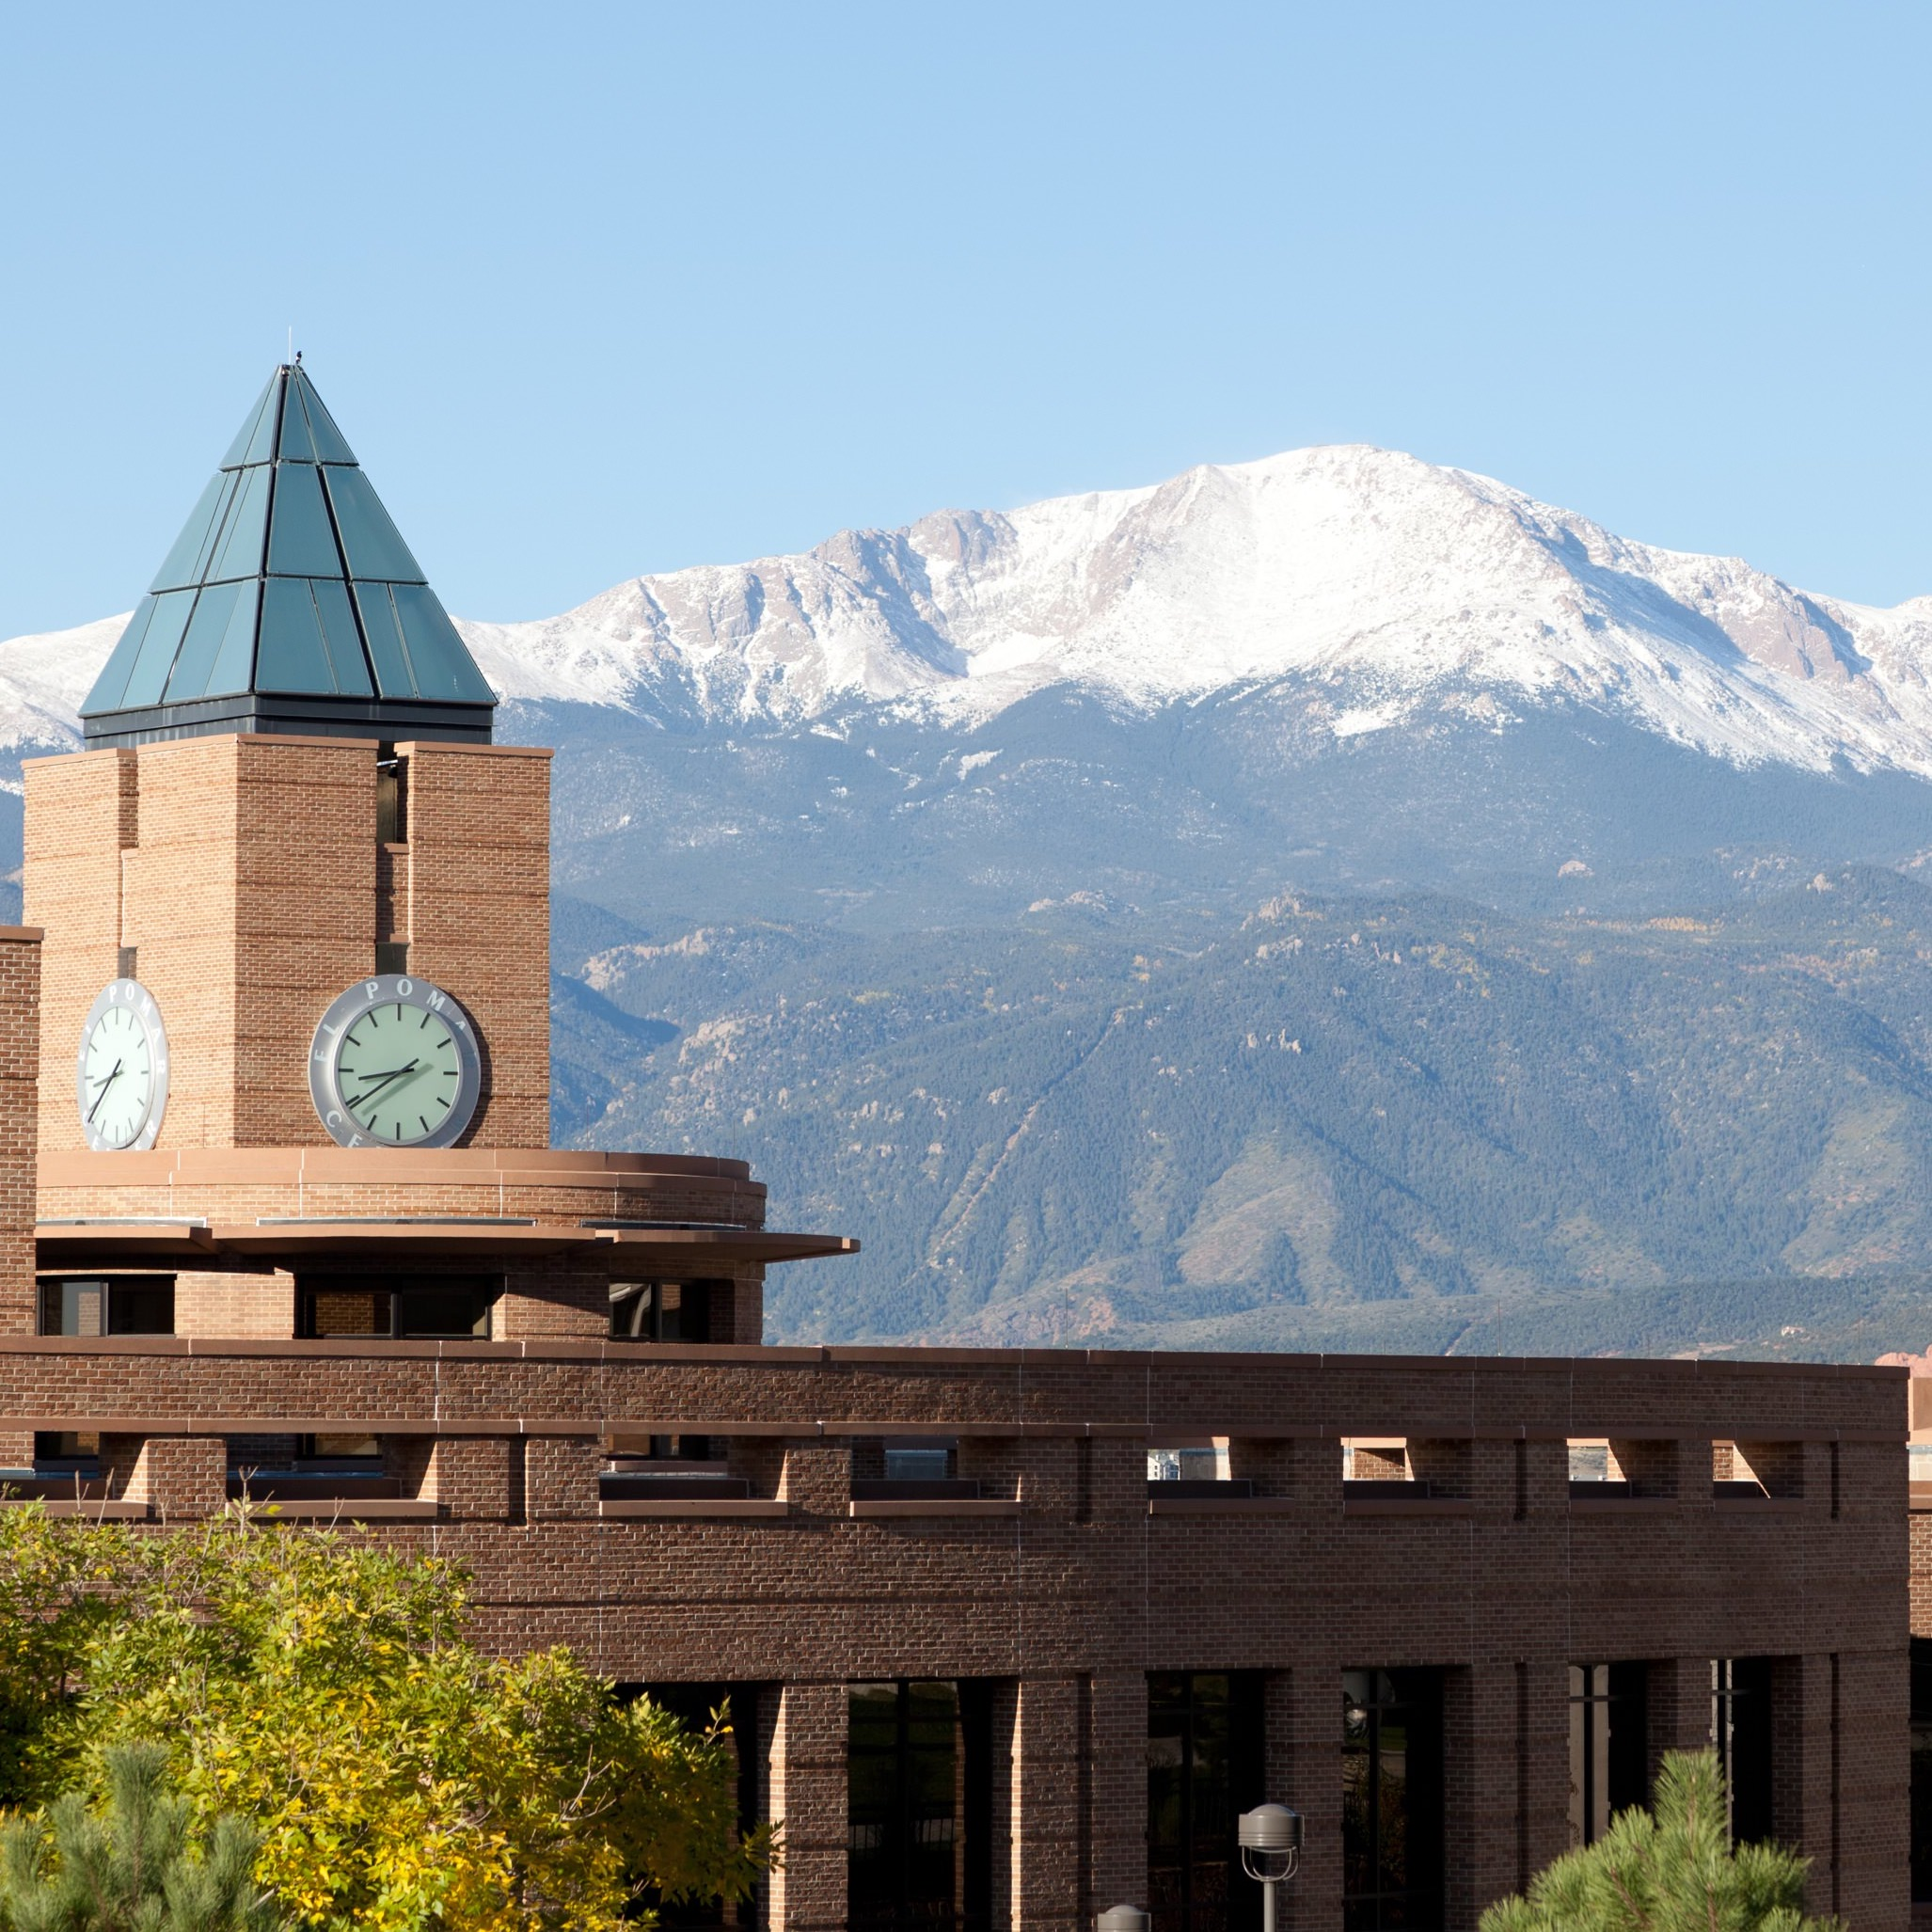 Pikes Peak and Kraemer Family Library